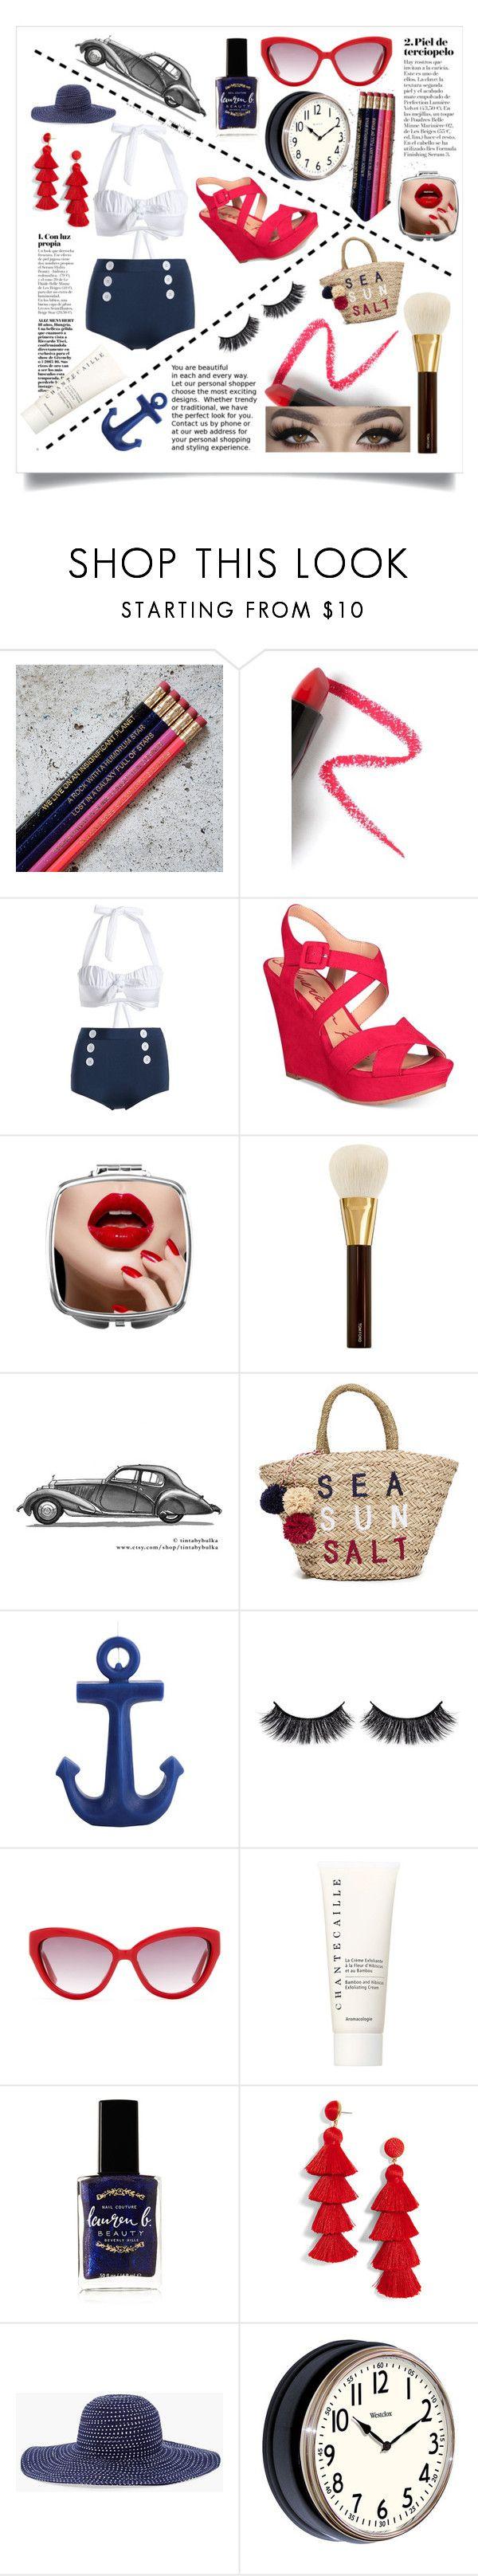 """Retro Beach Day"" by tialovespugs ❤ liked on Polyvore featuring Lapcos, American Rag Cie, Tom Ford, Sundry, Sunnylife, Battington, Moschino, Chantecaille, Lauren B. Beauty and BaubleBar"